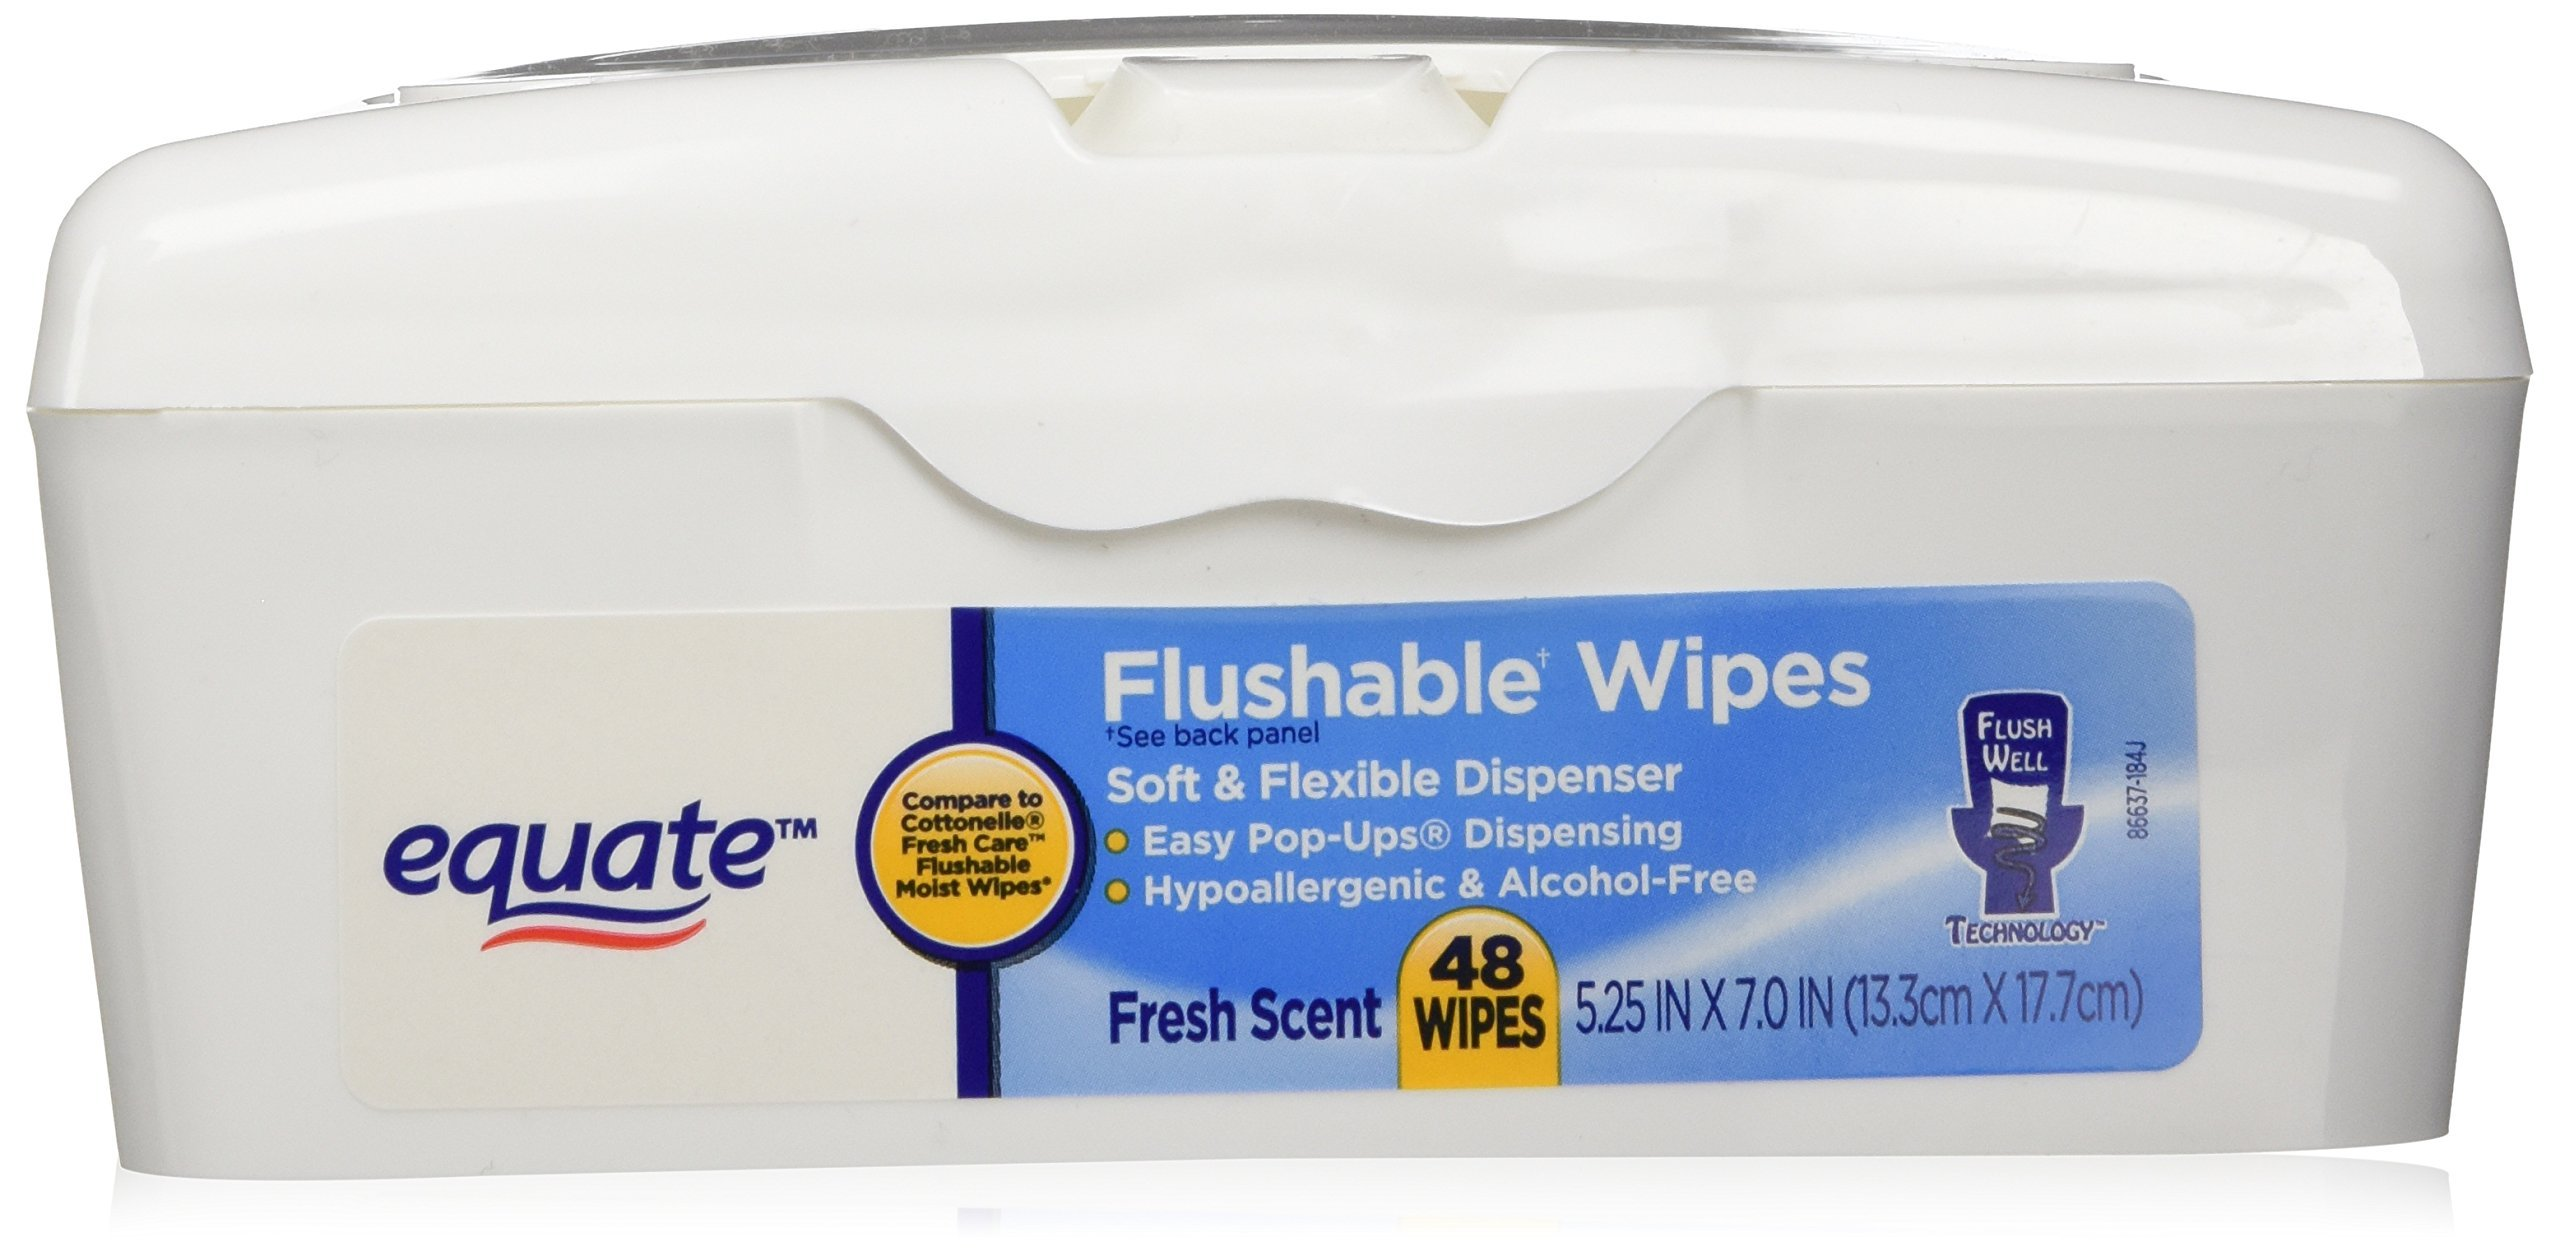 Equate Flushable Wipes In Soft Flexible Dispenser, Fresh Scent, 48 Sheet